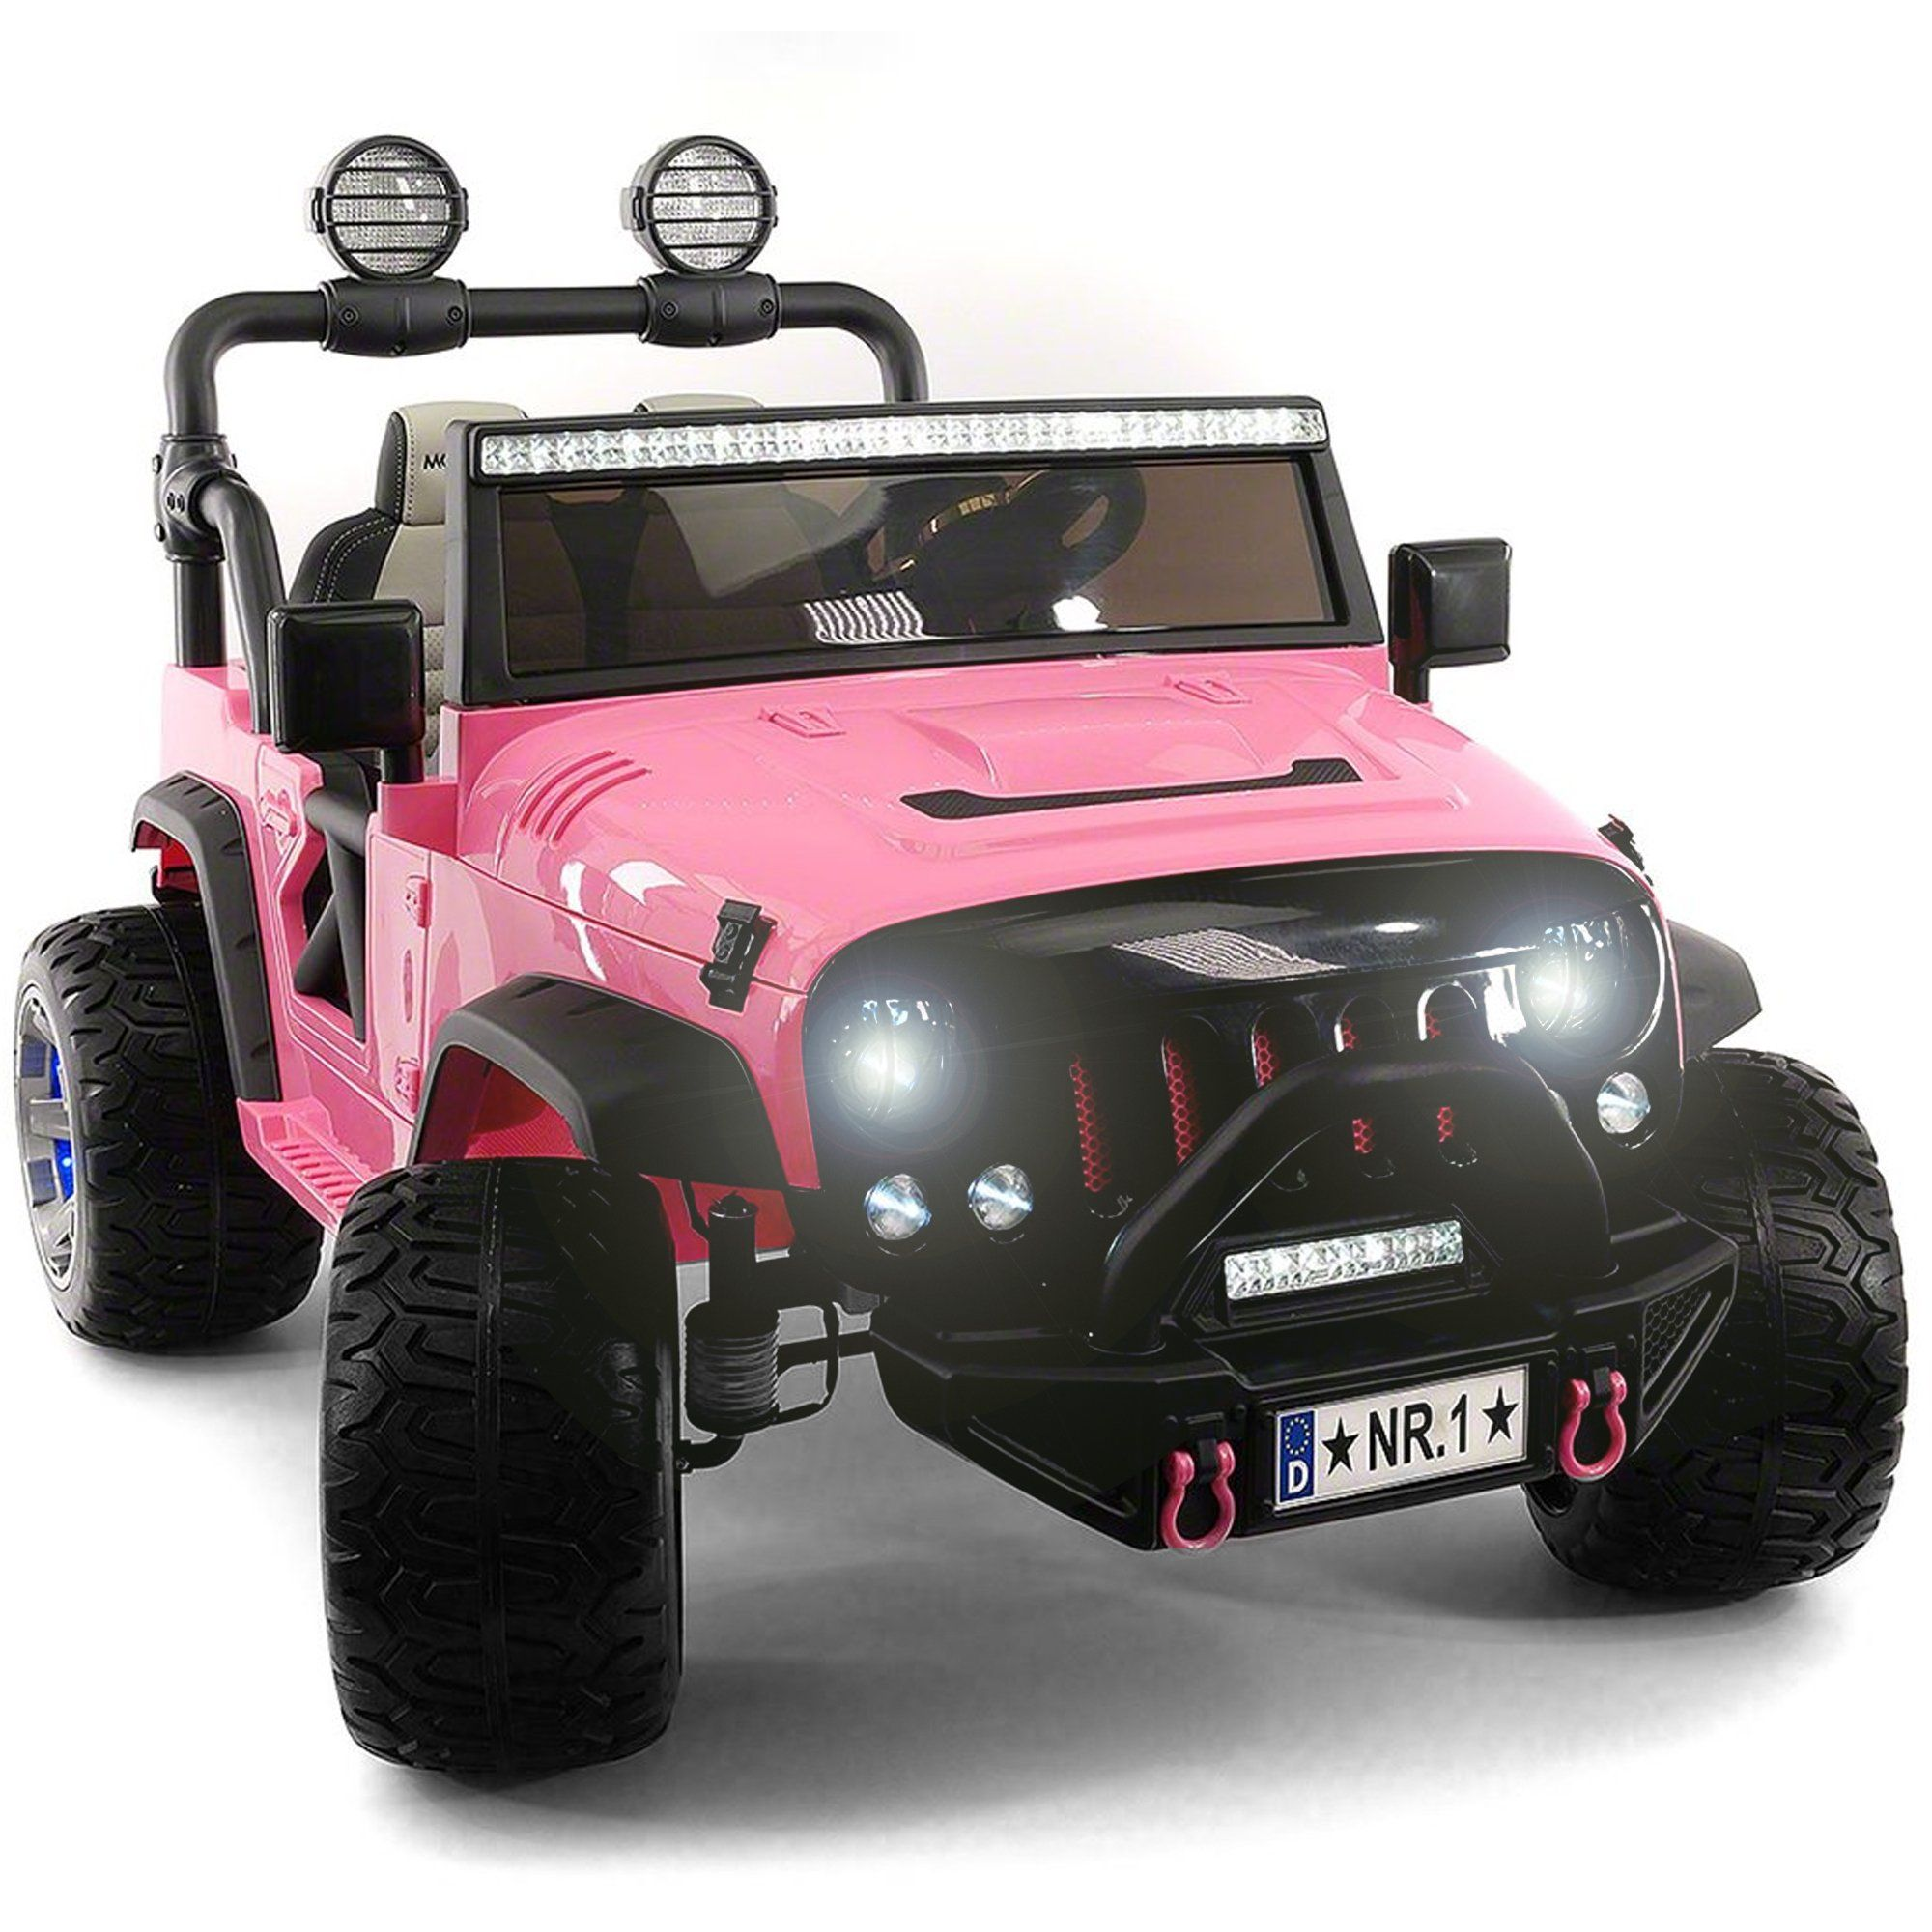 2020 Two 2 Seater Ride On Kids Car Truck W Remote Large 12v Battery Rubber Tires Pink In 2020 Battery Powered Car Power Cars Kids Ride On